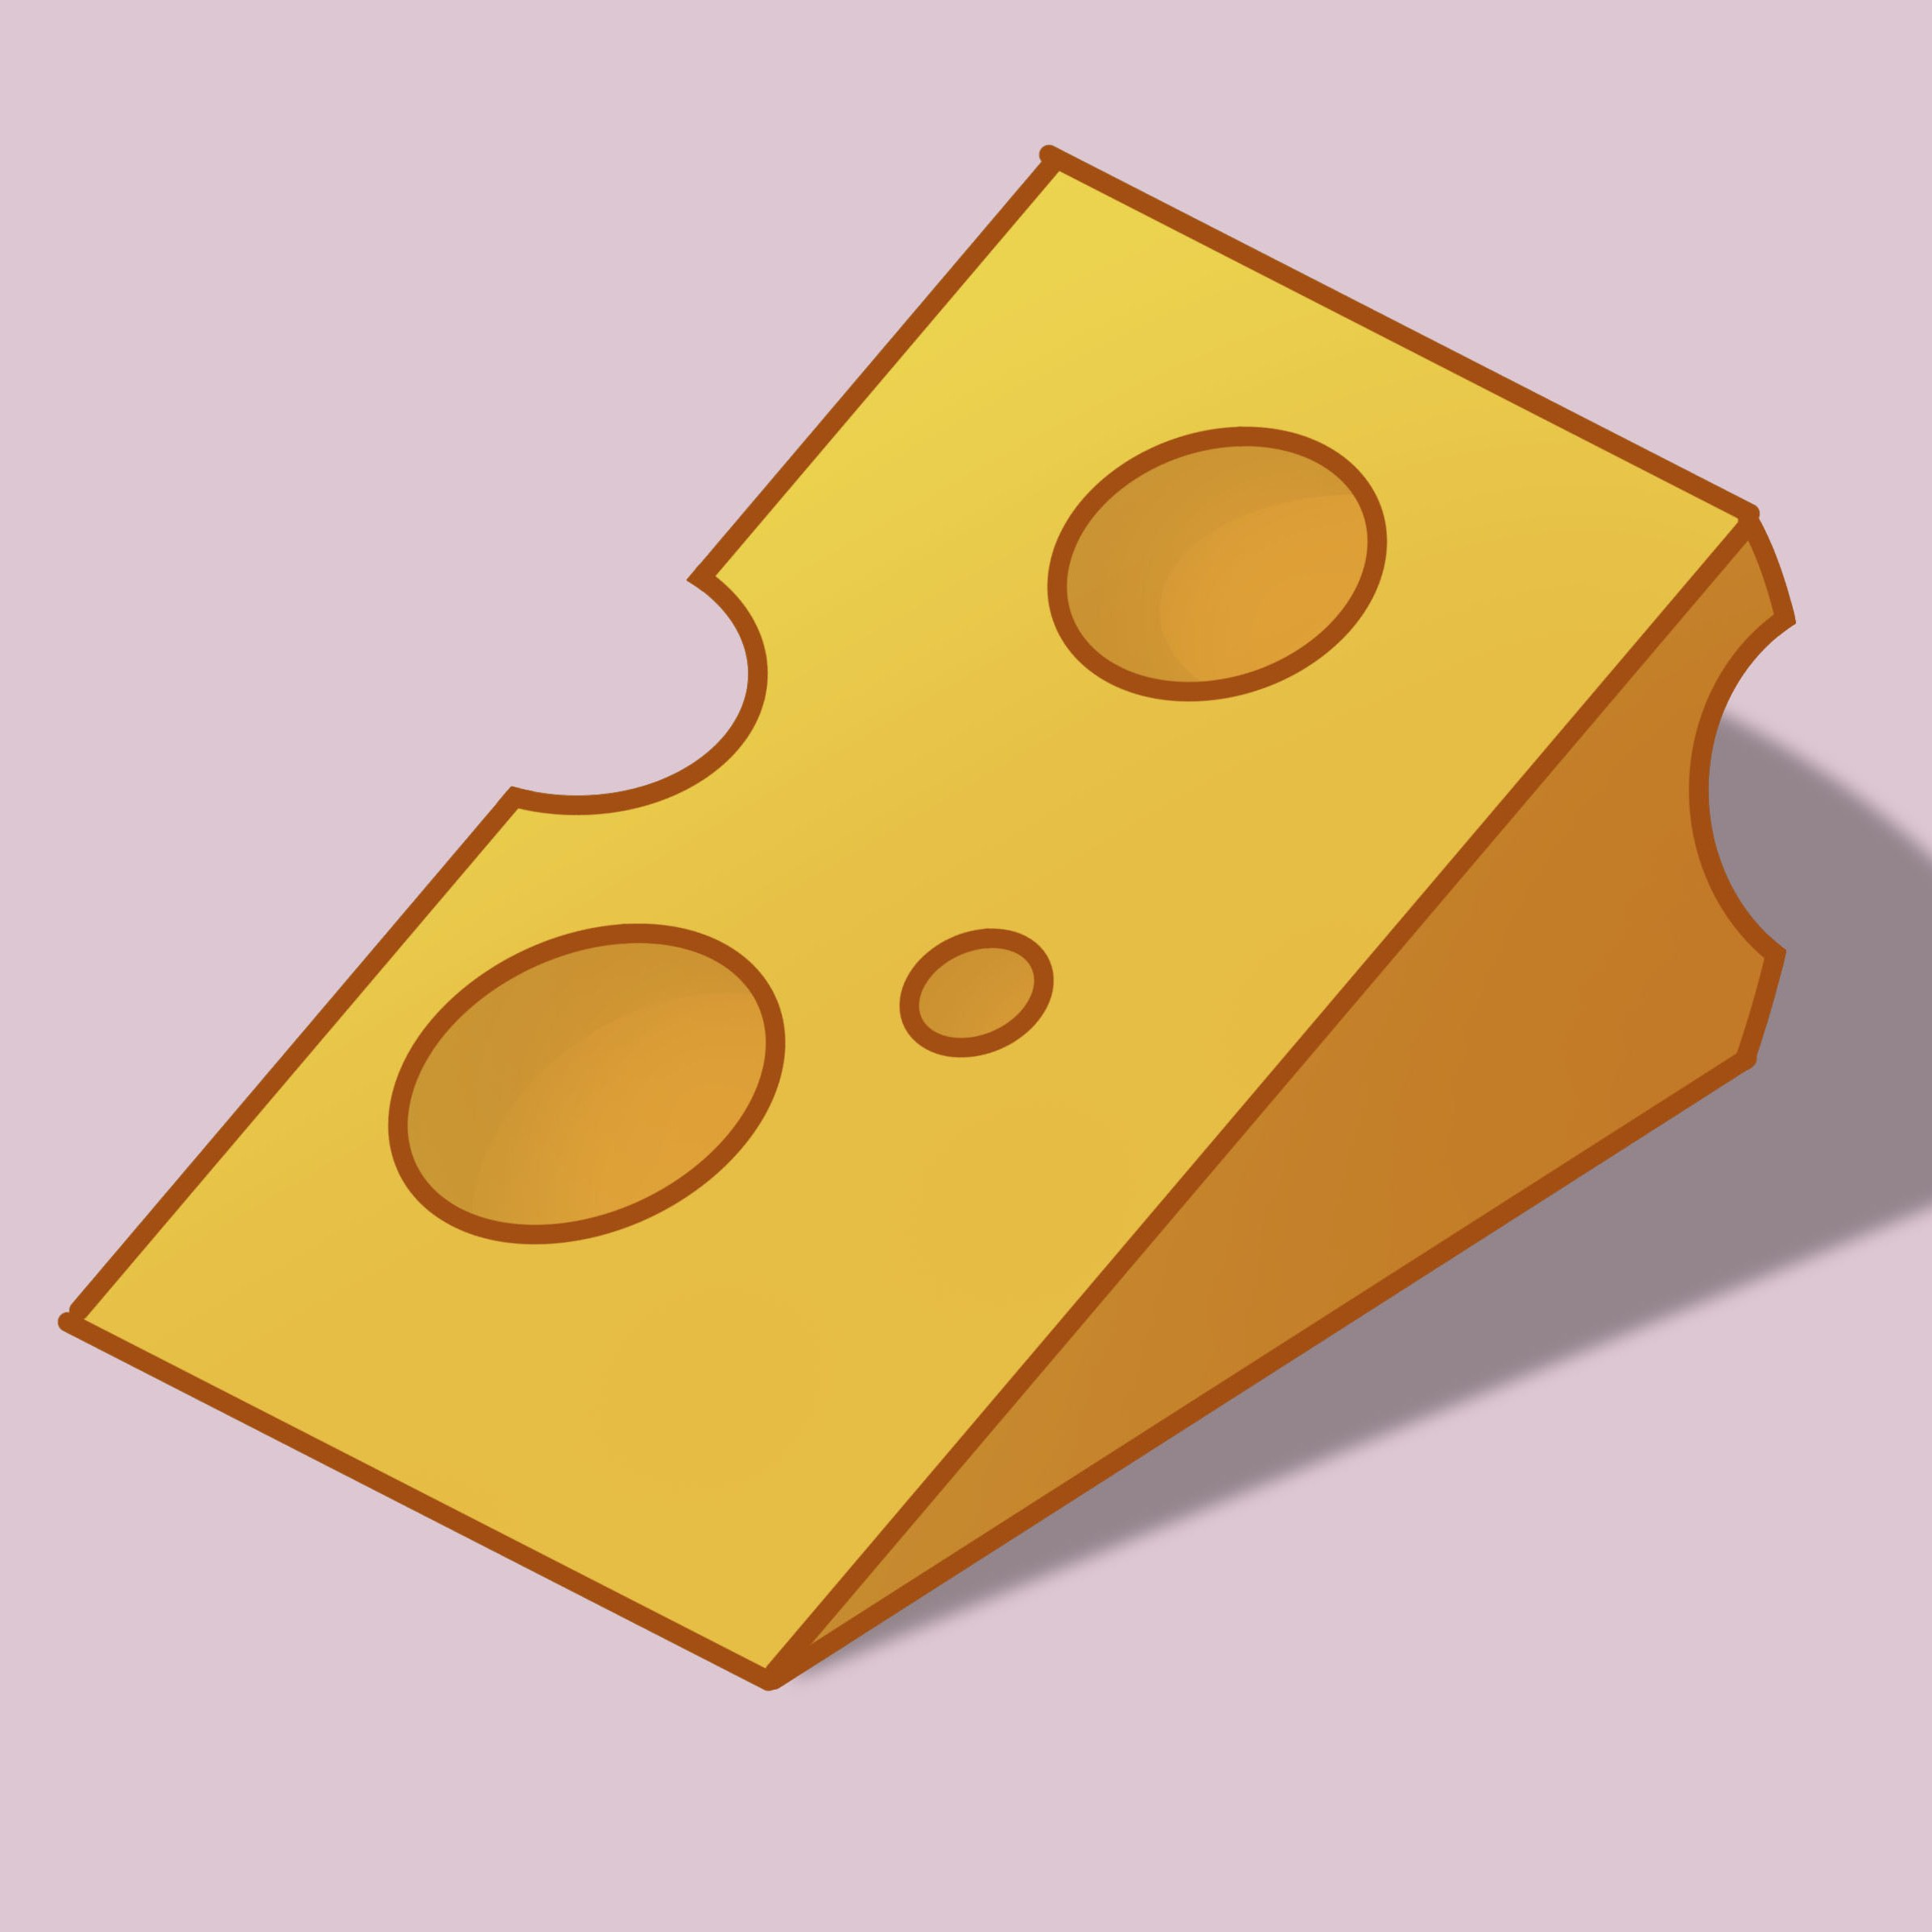 2400x2400 Drawn Sandwich Cute Cartoon